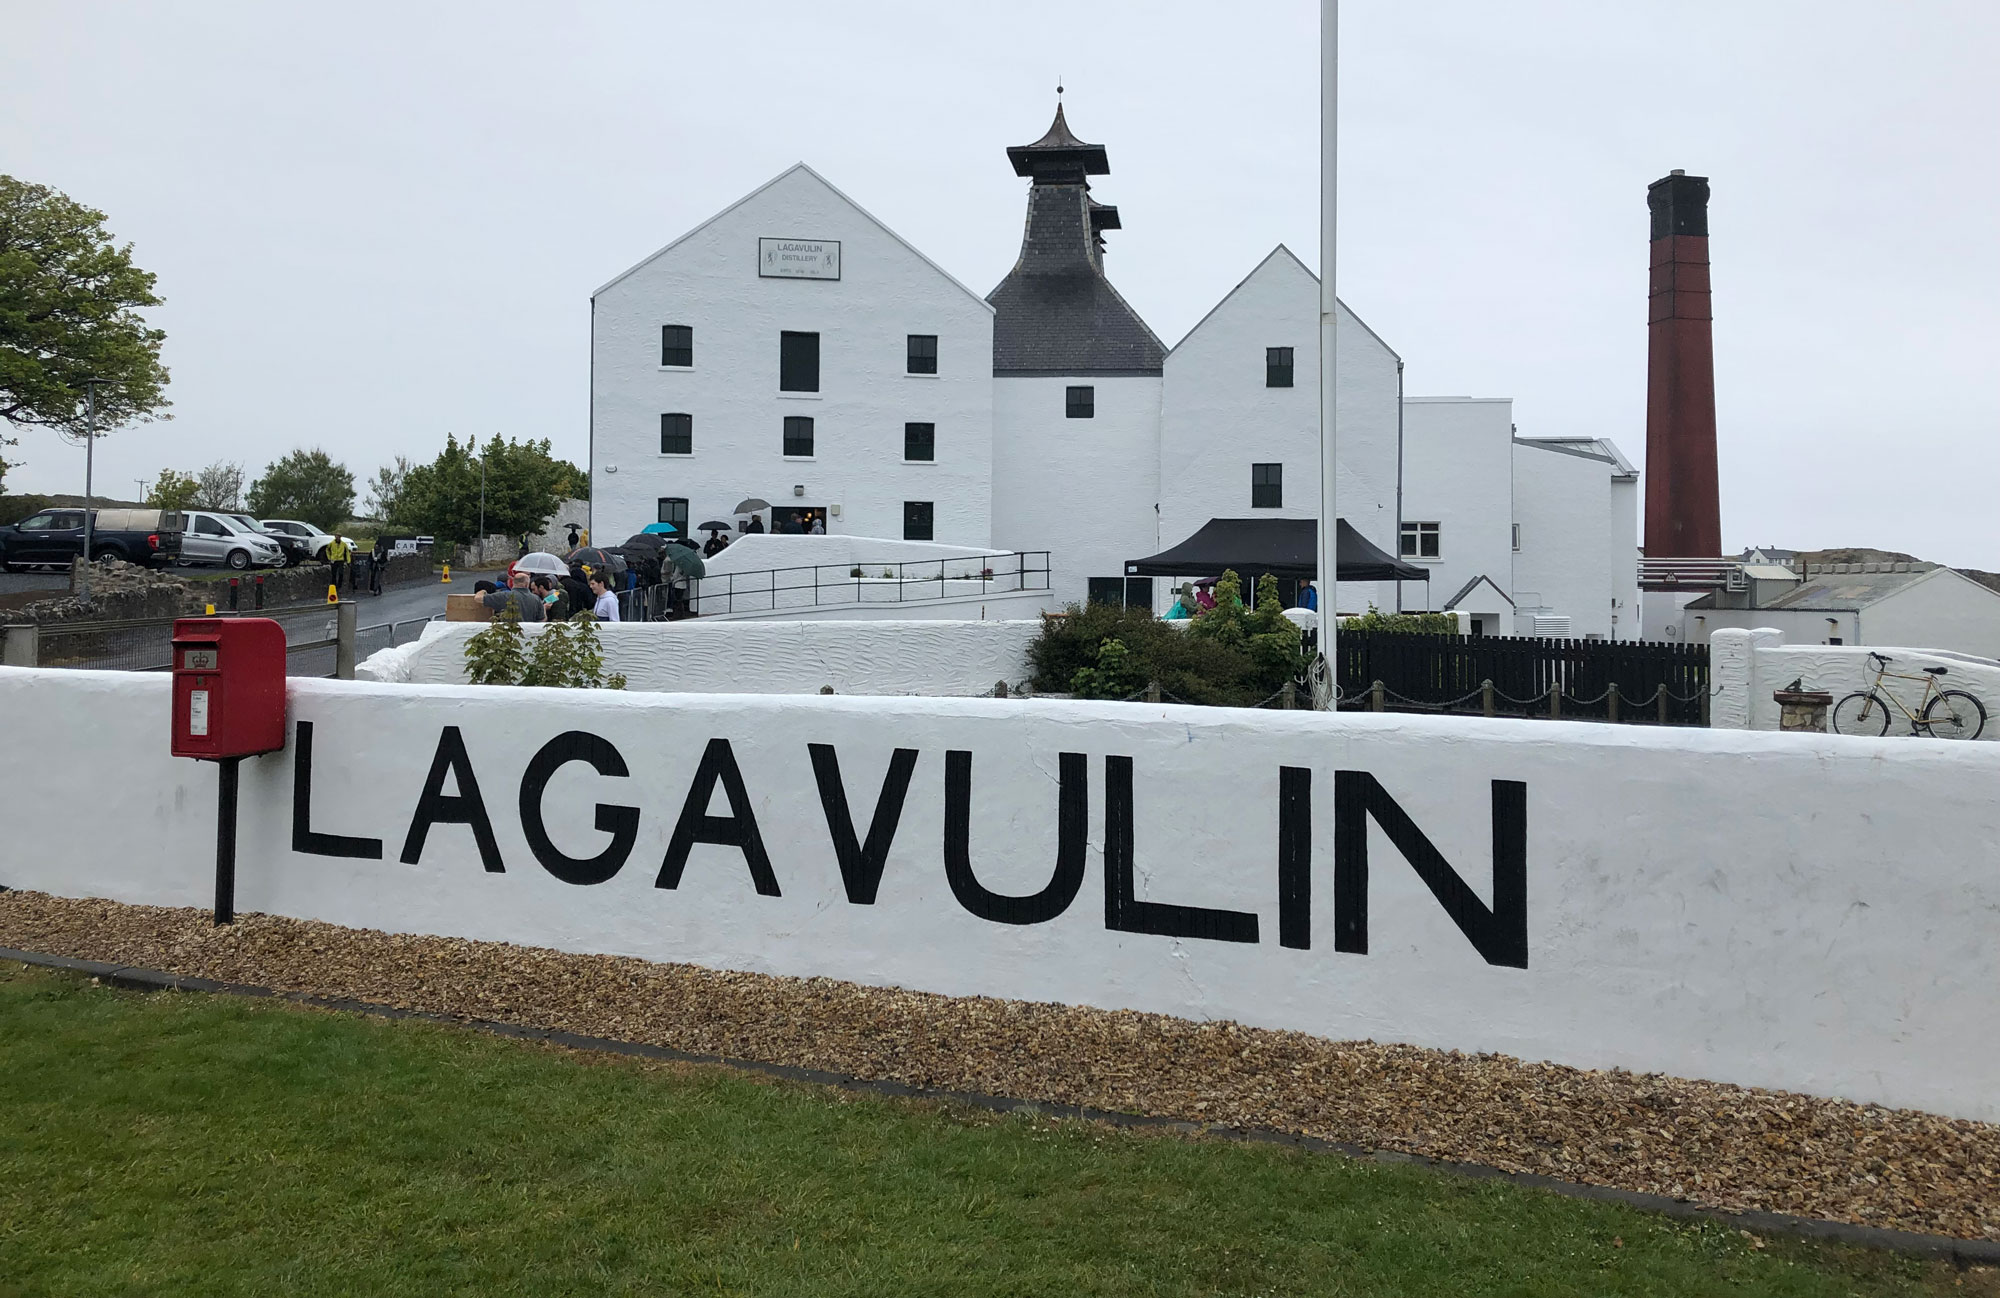 We put your Lagavulin questions to Colin Gordon!